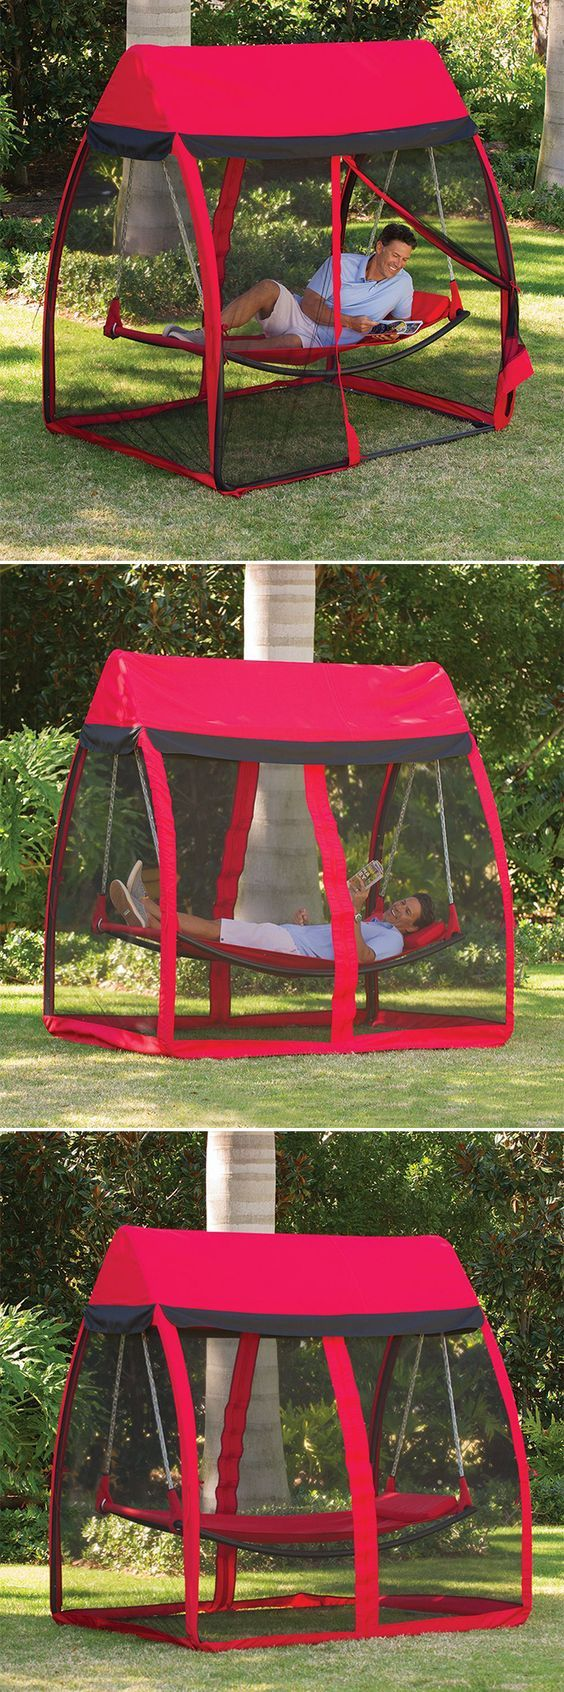 Da da danielle colby cushman tattoos - This Is The Hammock That Shields You From Pesky Mosquitoes And Insects While You Sway Comfortably